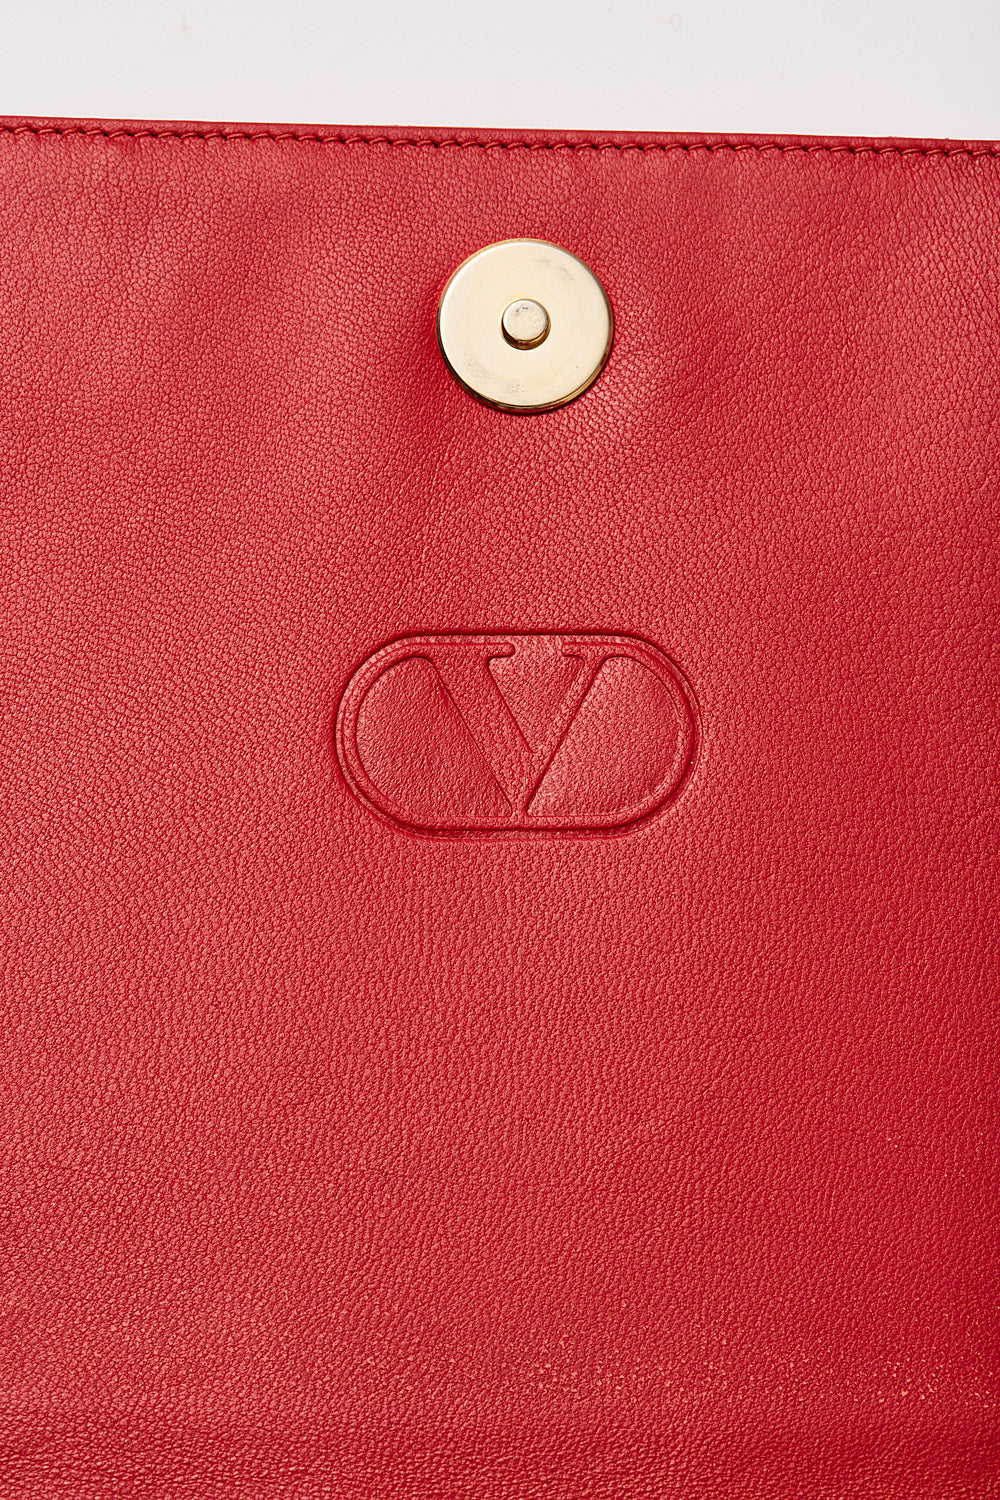 Valentino <br>1980's red lambskin leather & crystal chain clutch bag